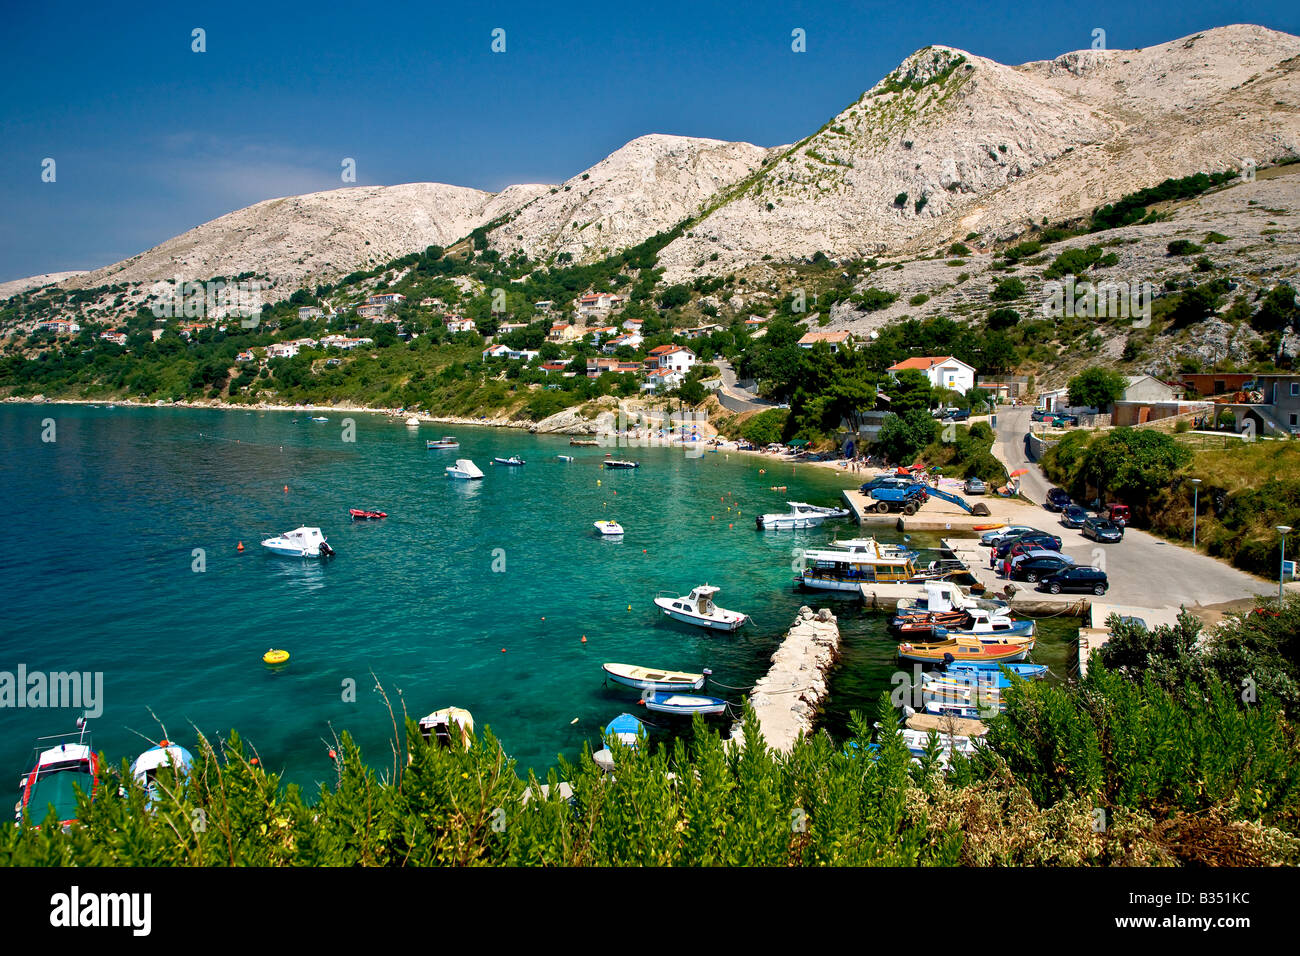 Stara Baska bay at the isle of Krk in Croatia - Stock Image